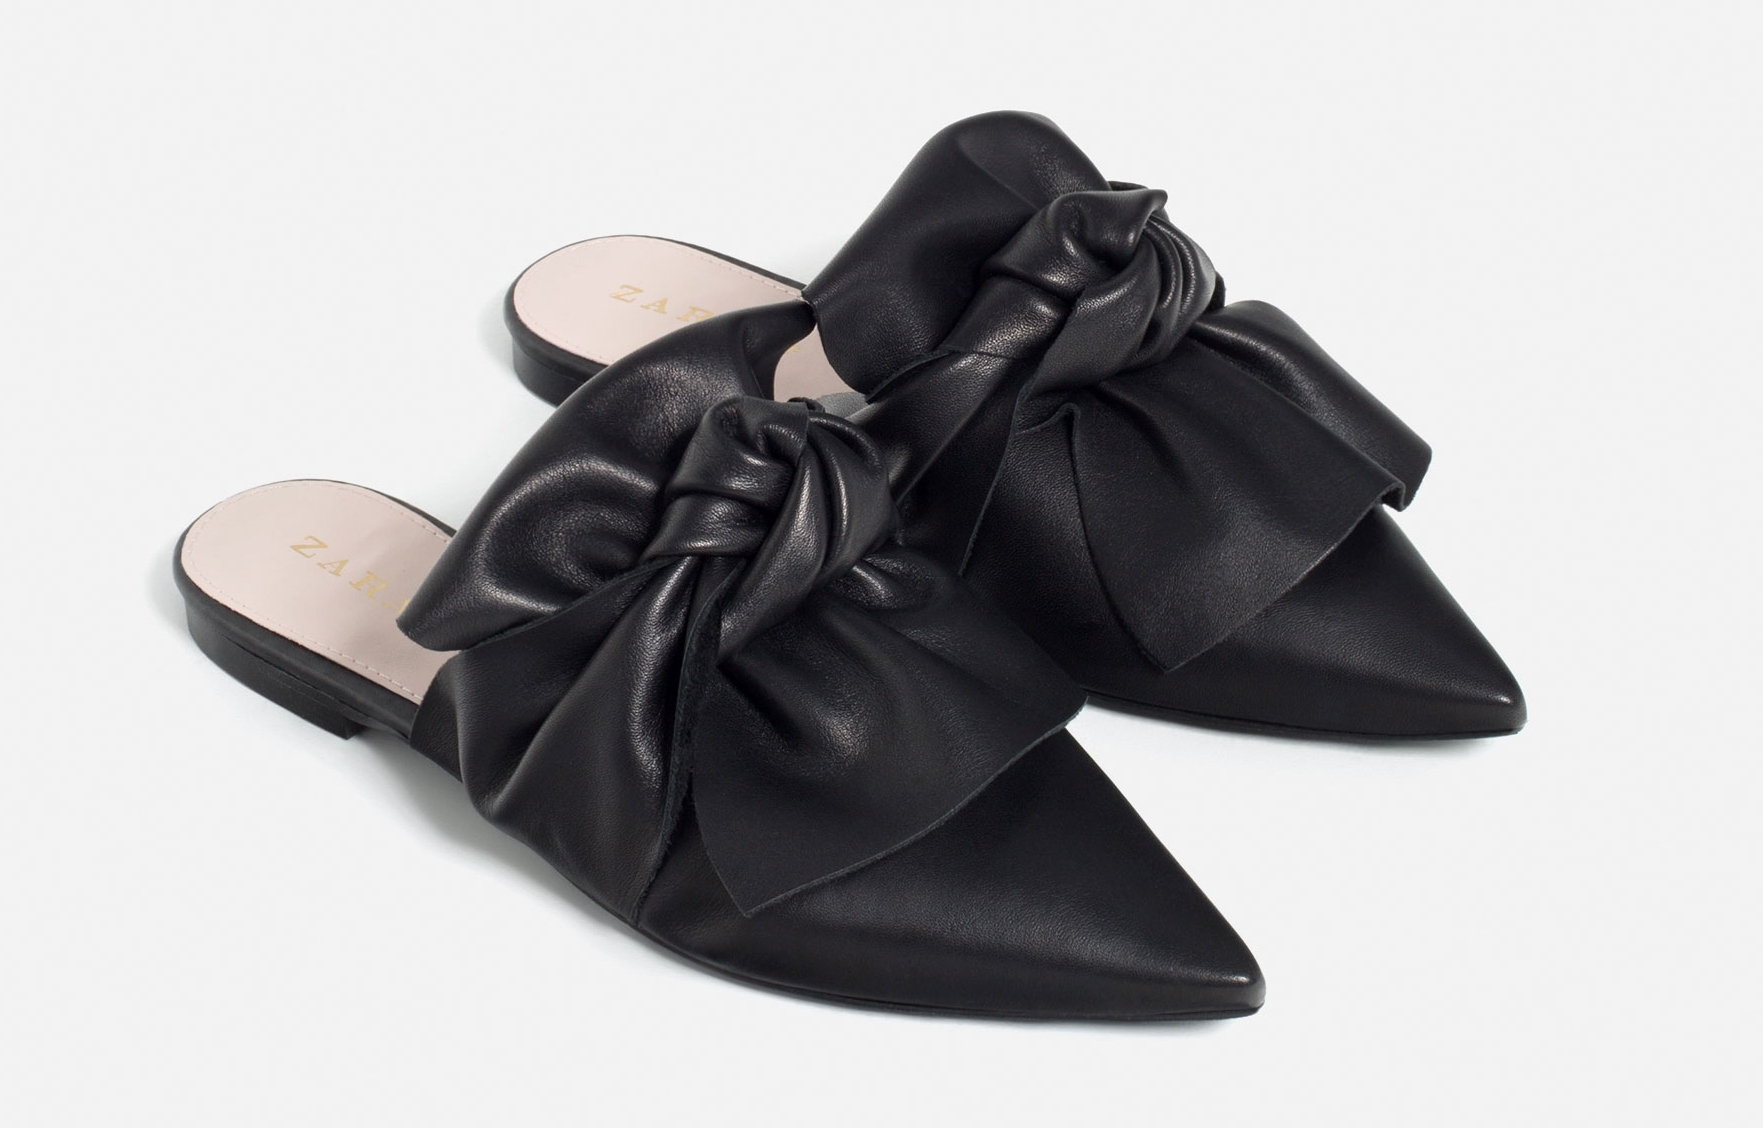 ROSE & VY Journal Current Obsession Zara's Leather Bow Tie Slides